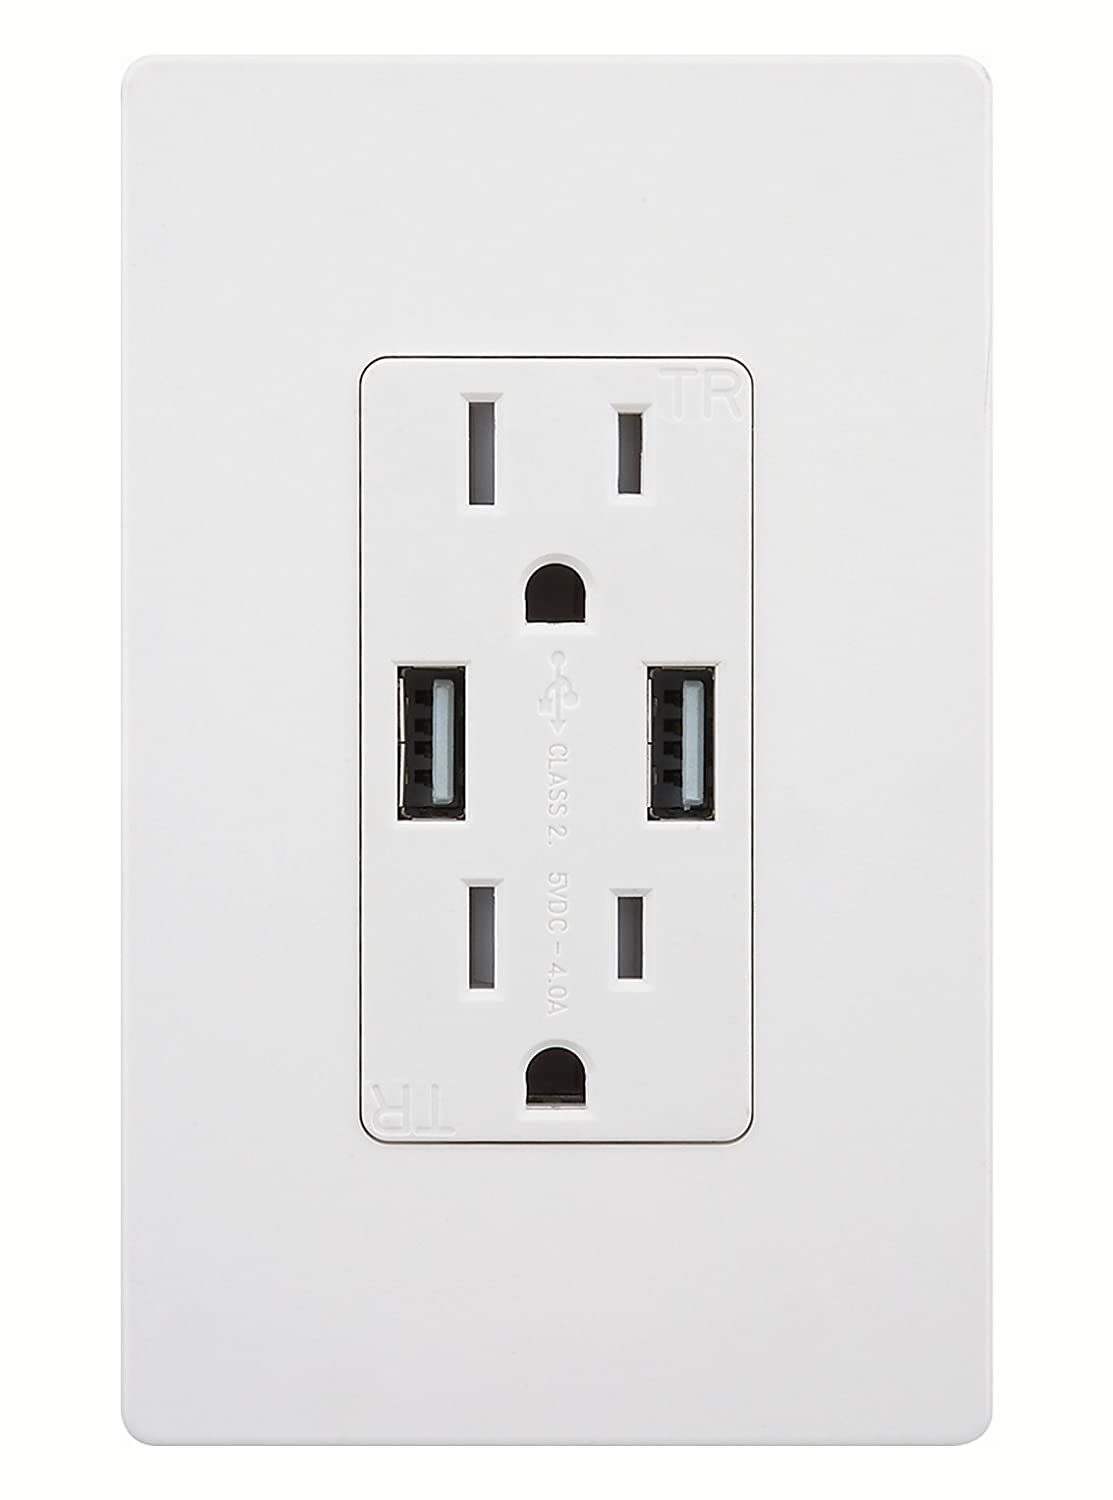 Usb Wall Outlet Price Two Outlets On Sale On Amazon Bgr